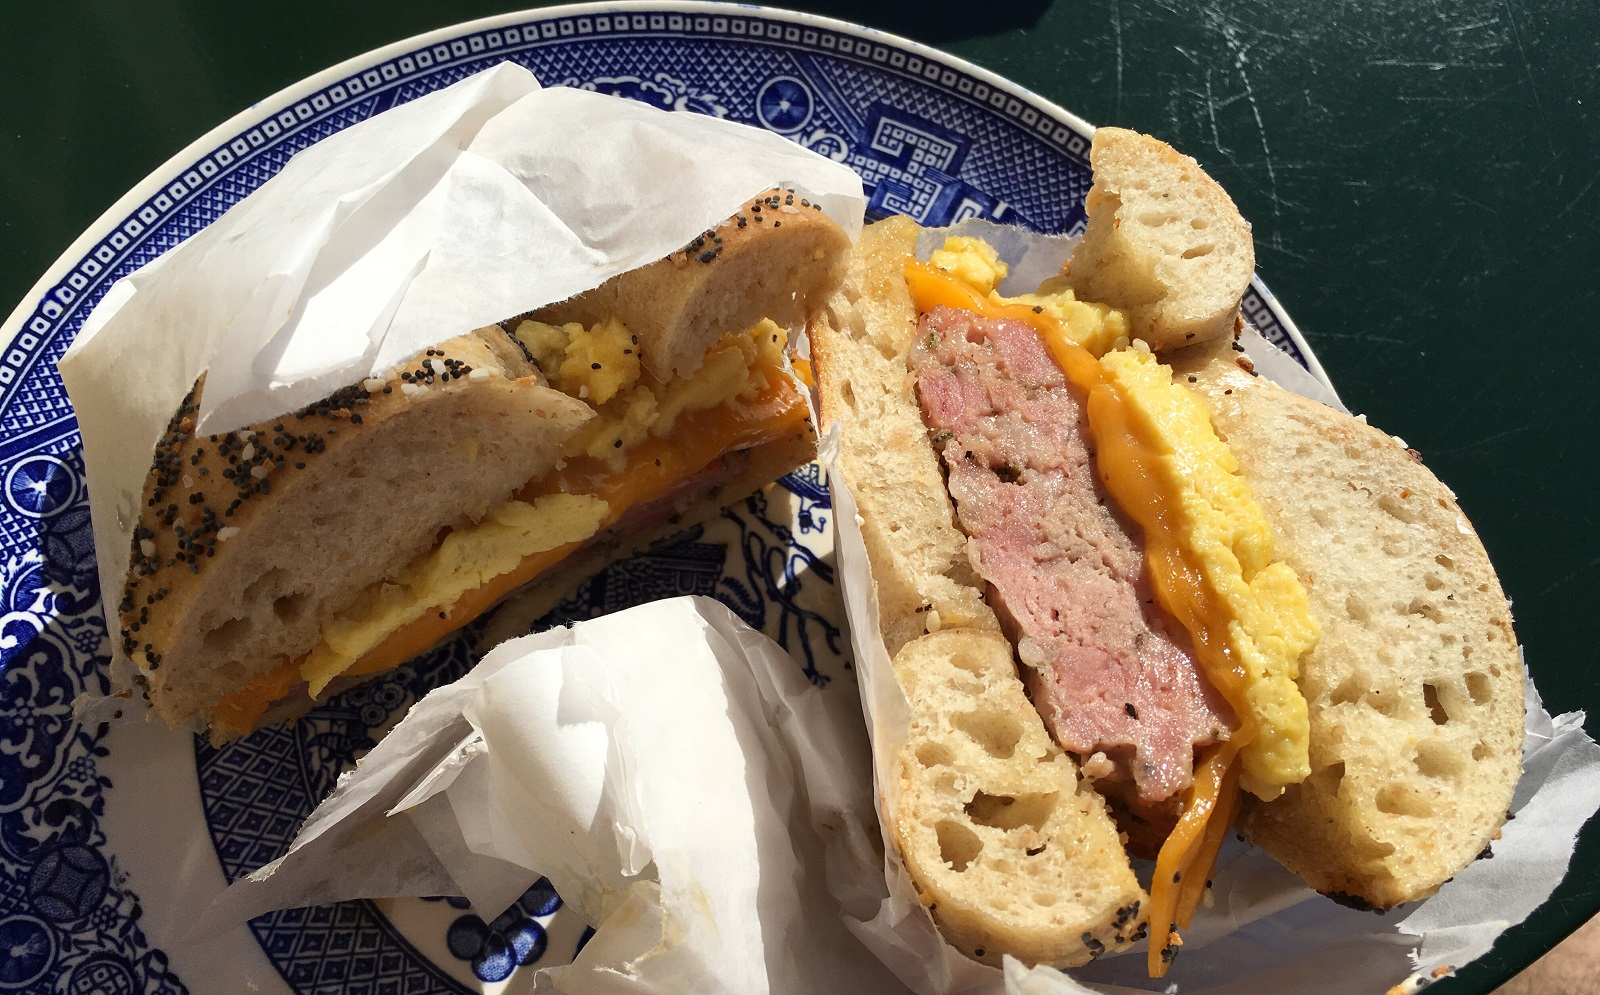 The Aaliyah sandwich has breakfast sausage and maple butter. (Nick Guy/Special to The News)